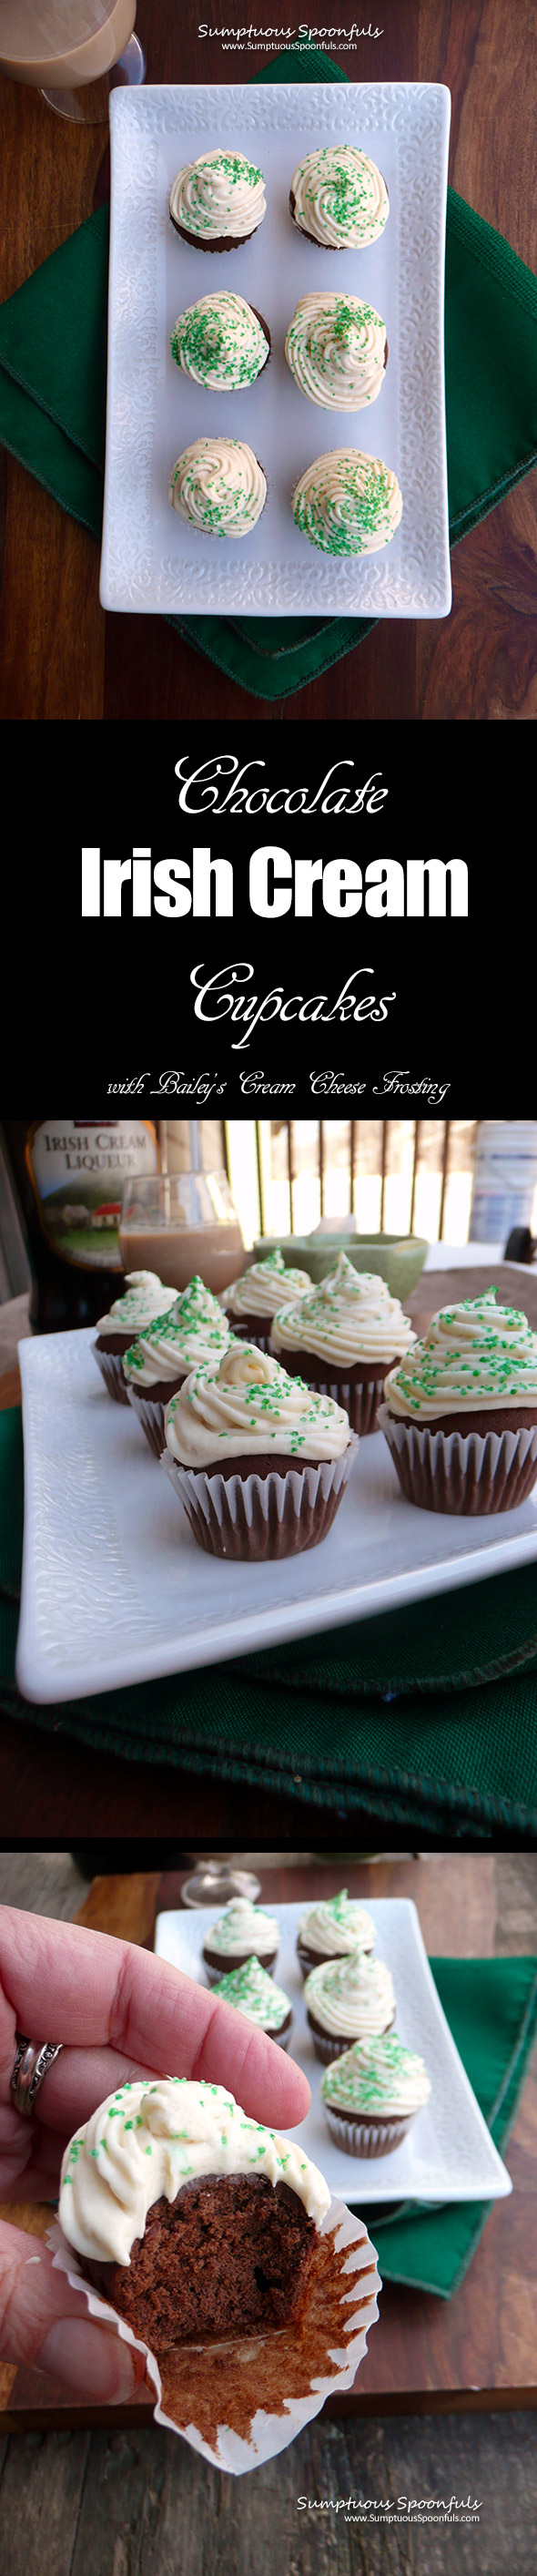 Chocolate Irish Cream Mini Cupcakes with Bailey's Cream Cheese Frosting ~ Sumptuous Spoonfuls #Irish #cake #recipe #StPatricksDay